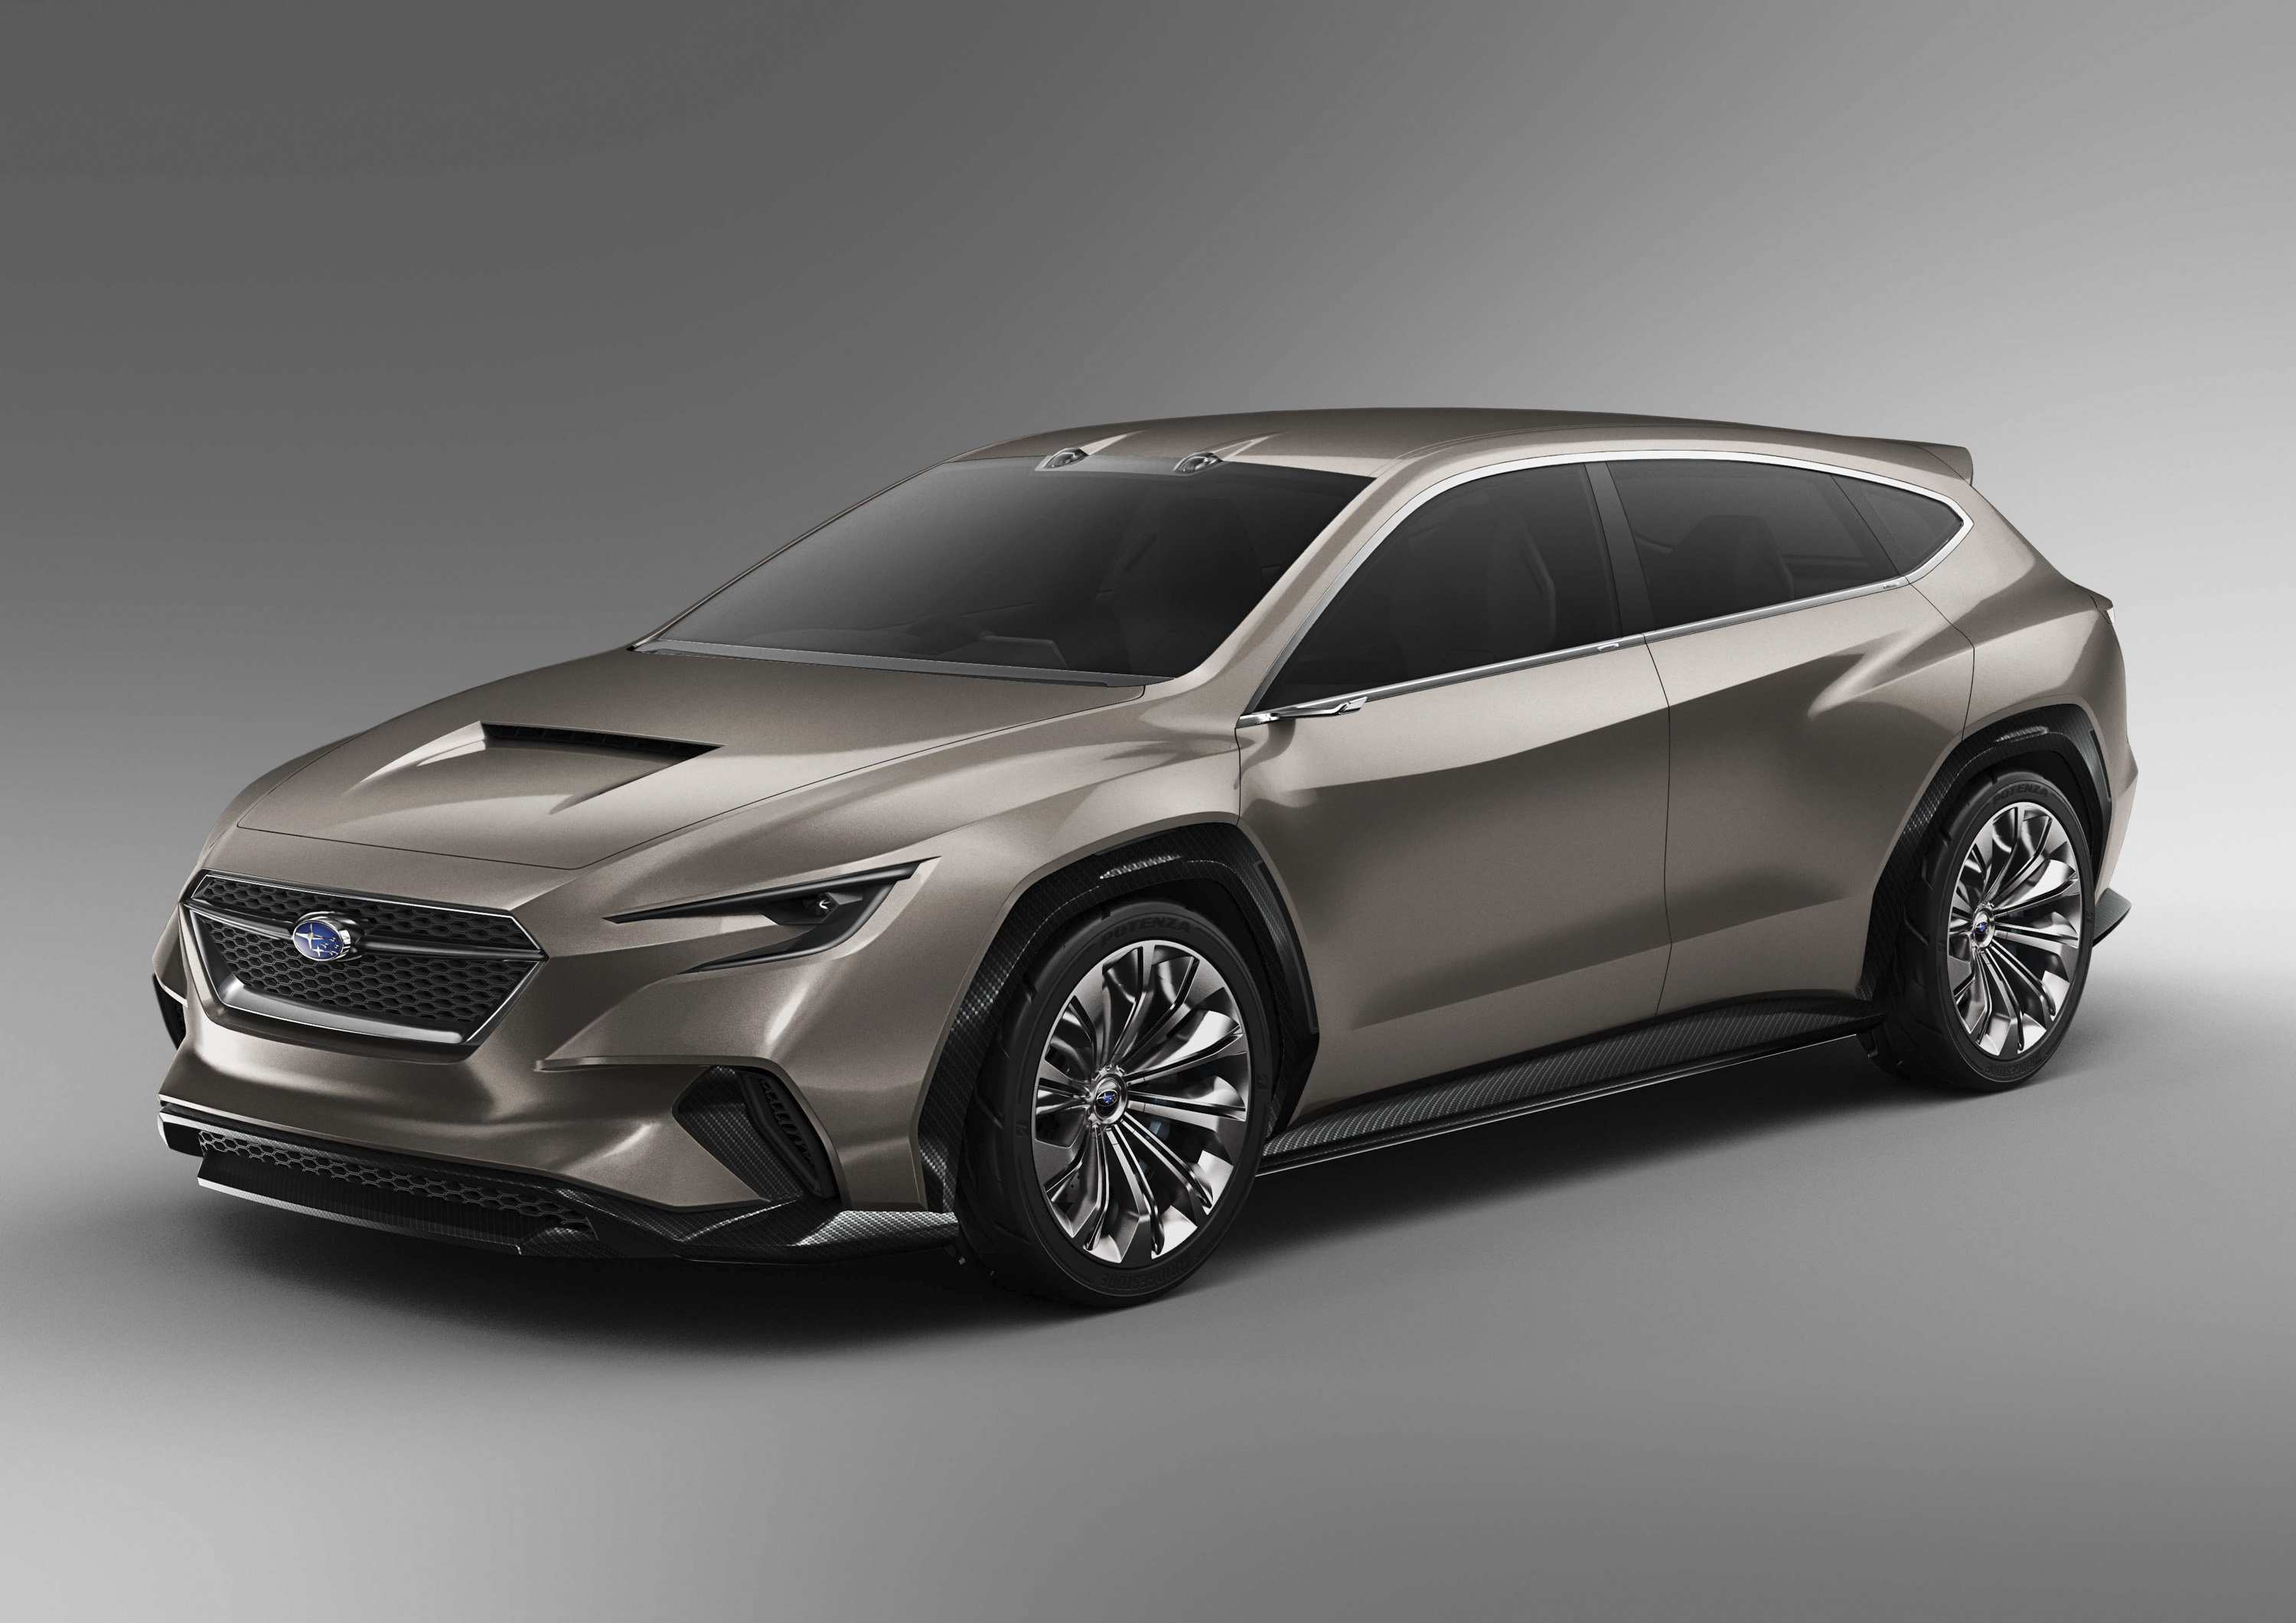 57 Gallery of Subaru Concept 2020 Reviews by Subaru Concept 2020